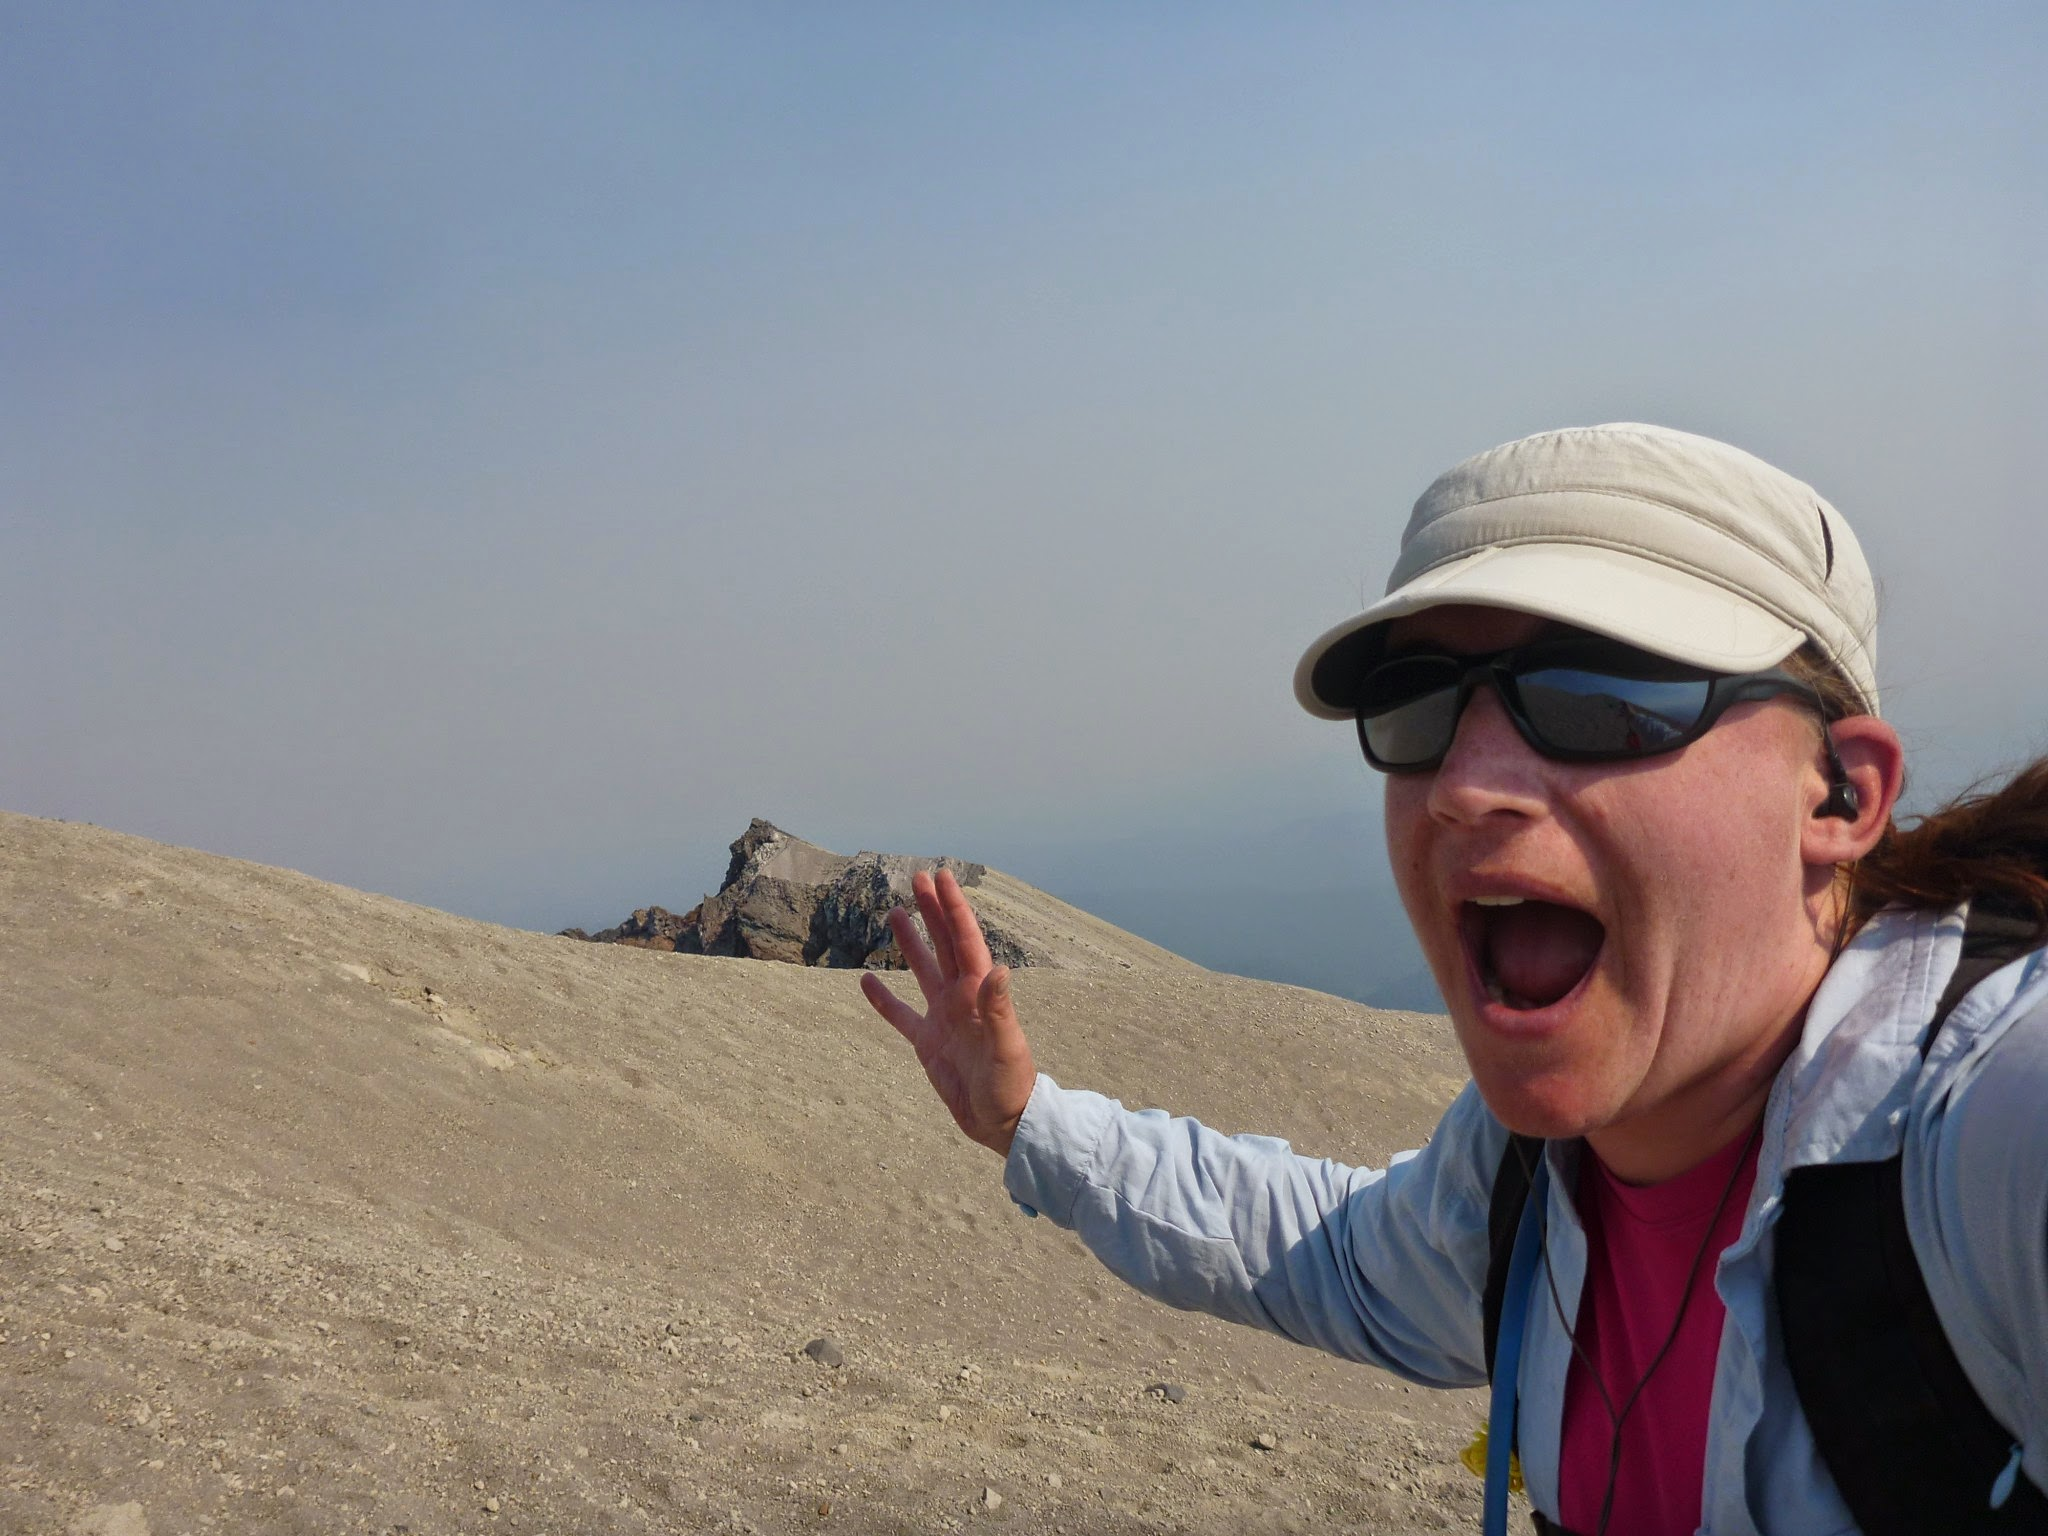 A hiker with a hand in the air, mouth open, a hat and sunglasses, near the summit of a volcano covered in sand